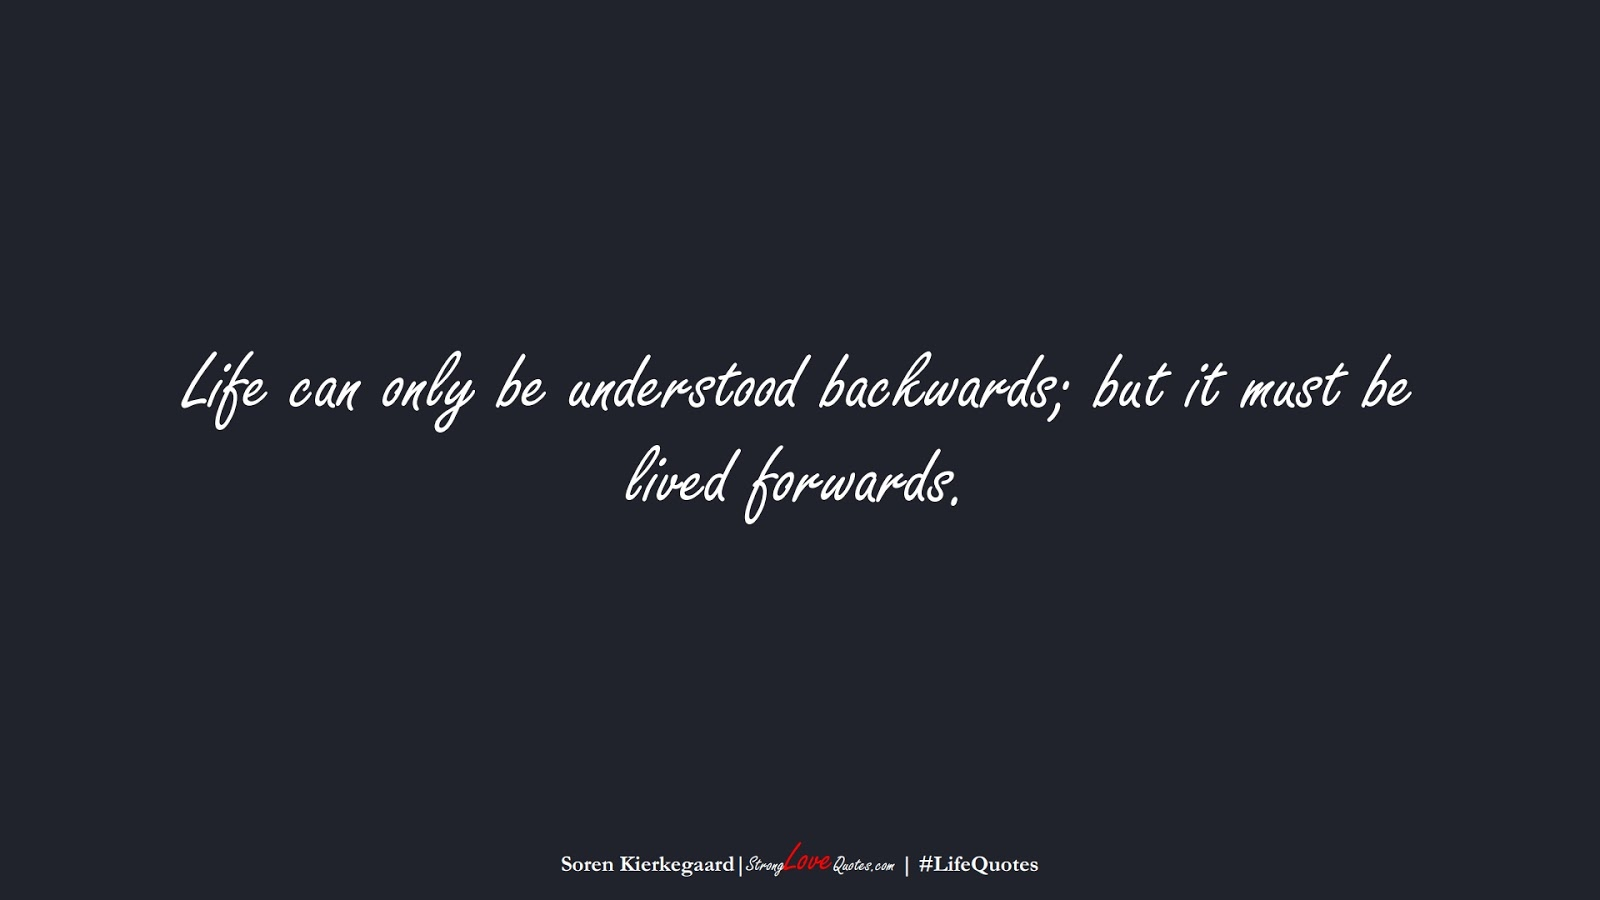 Life can only be understood backwards; but it must be lived forwards. (Soren Kierkegaard);  #LifeQuotes